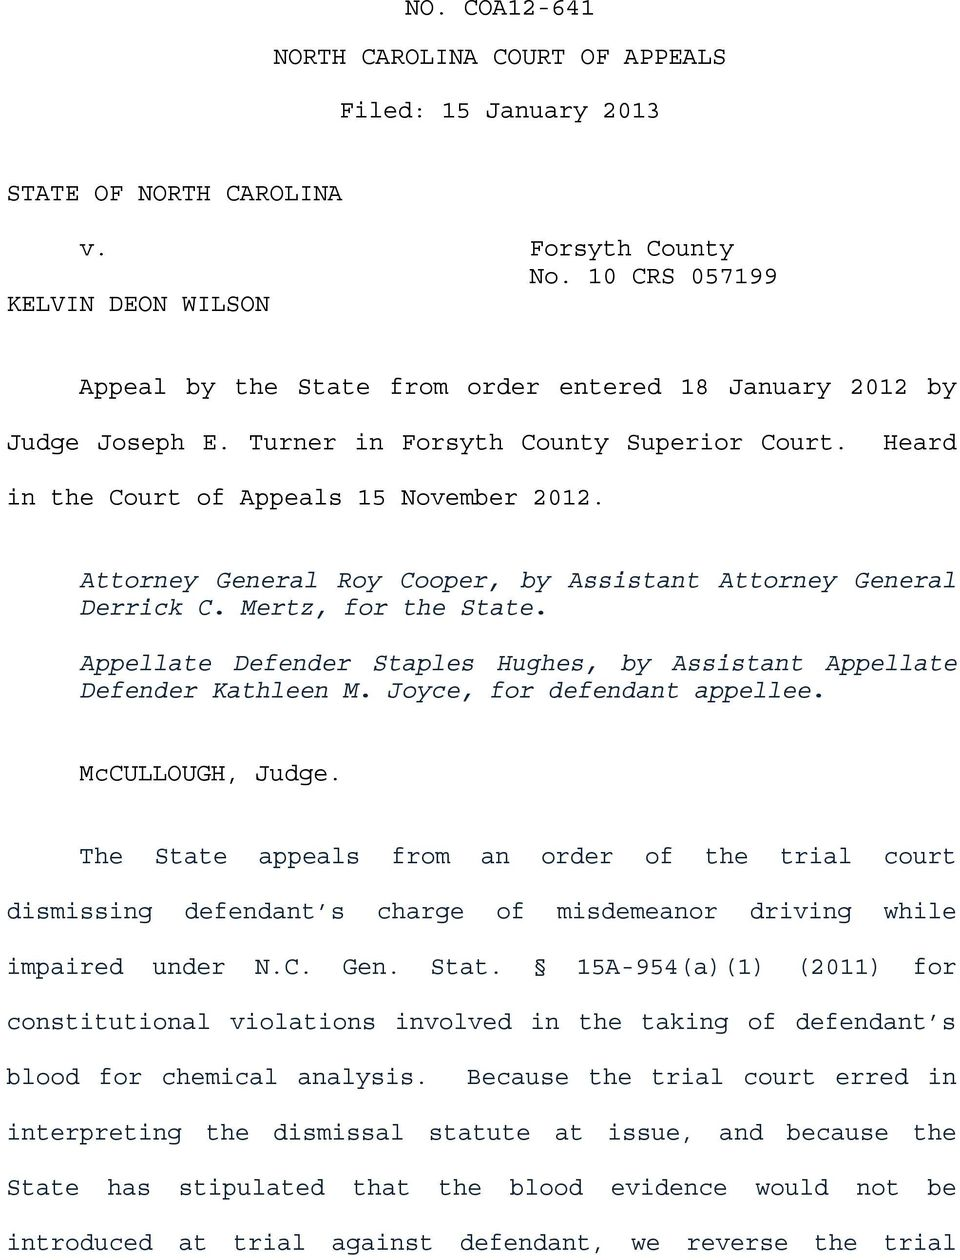 Attorney General Roy Cooper, by Assistant Attorney General Derrick C. Mertz, for the State. Appellate Defender Staples Hughes, by Assistant Appellate Defender Kathleen M.